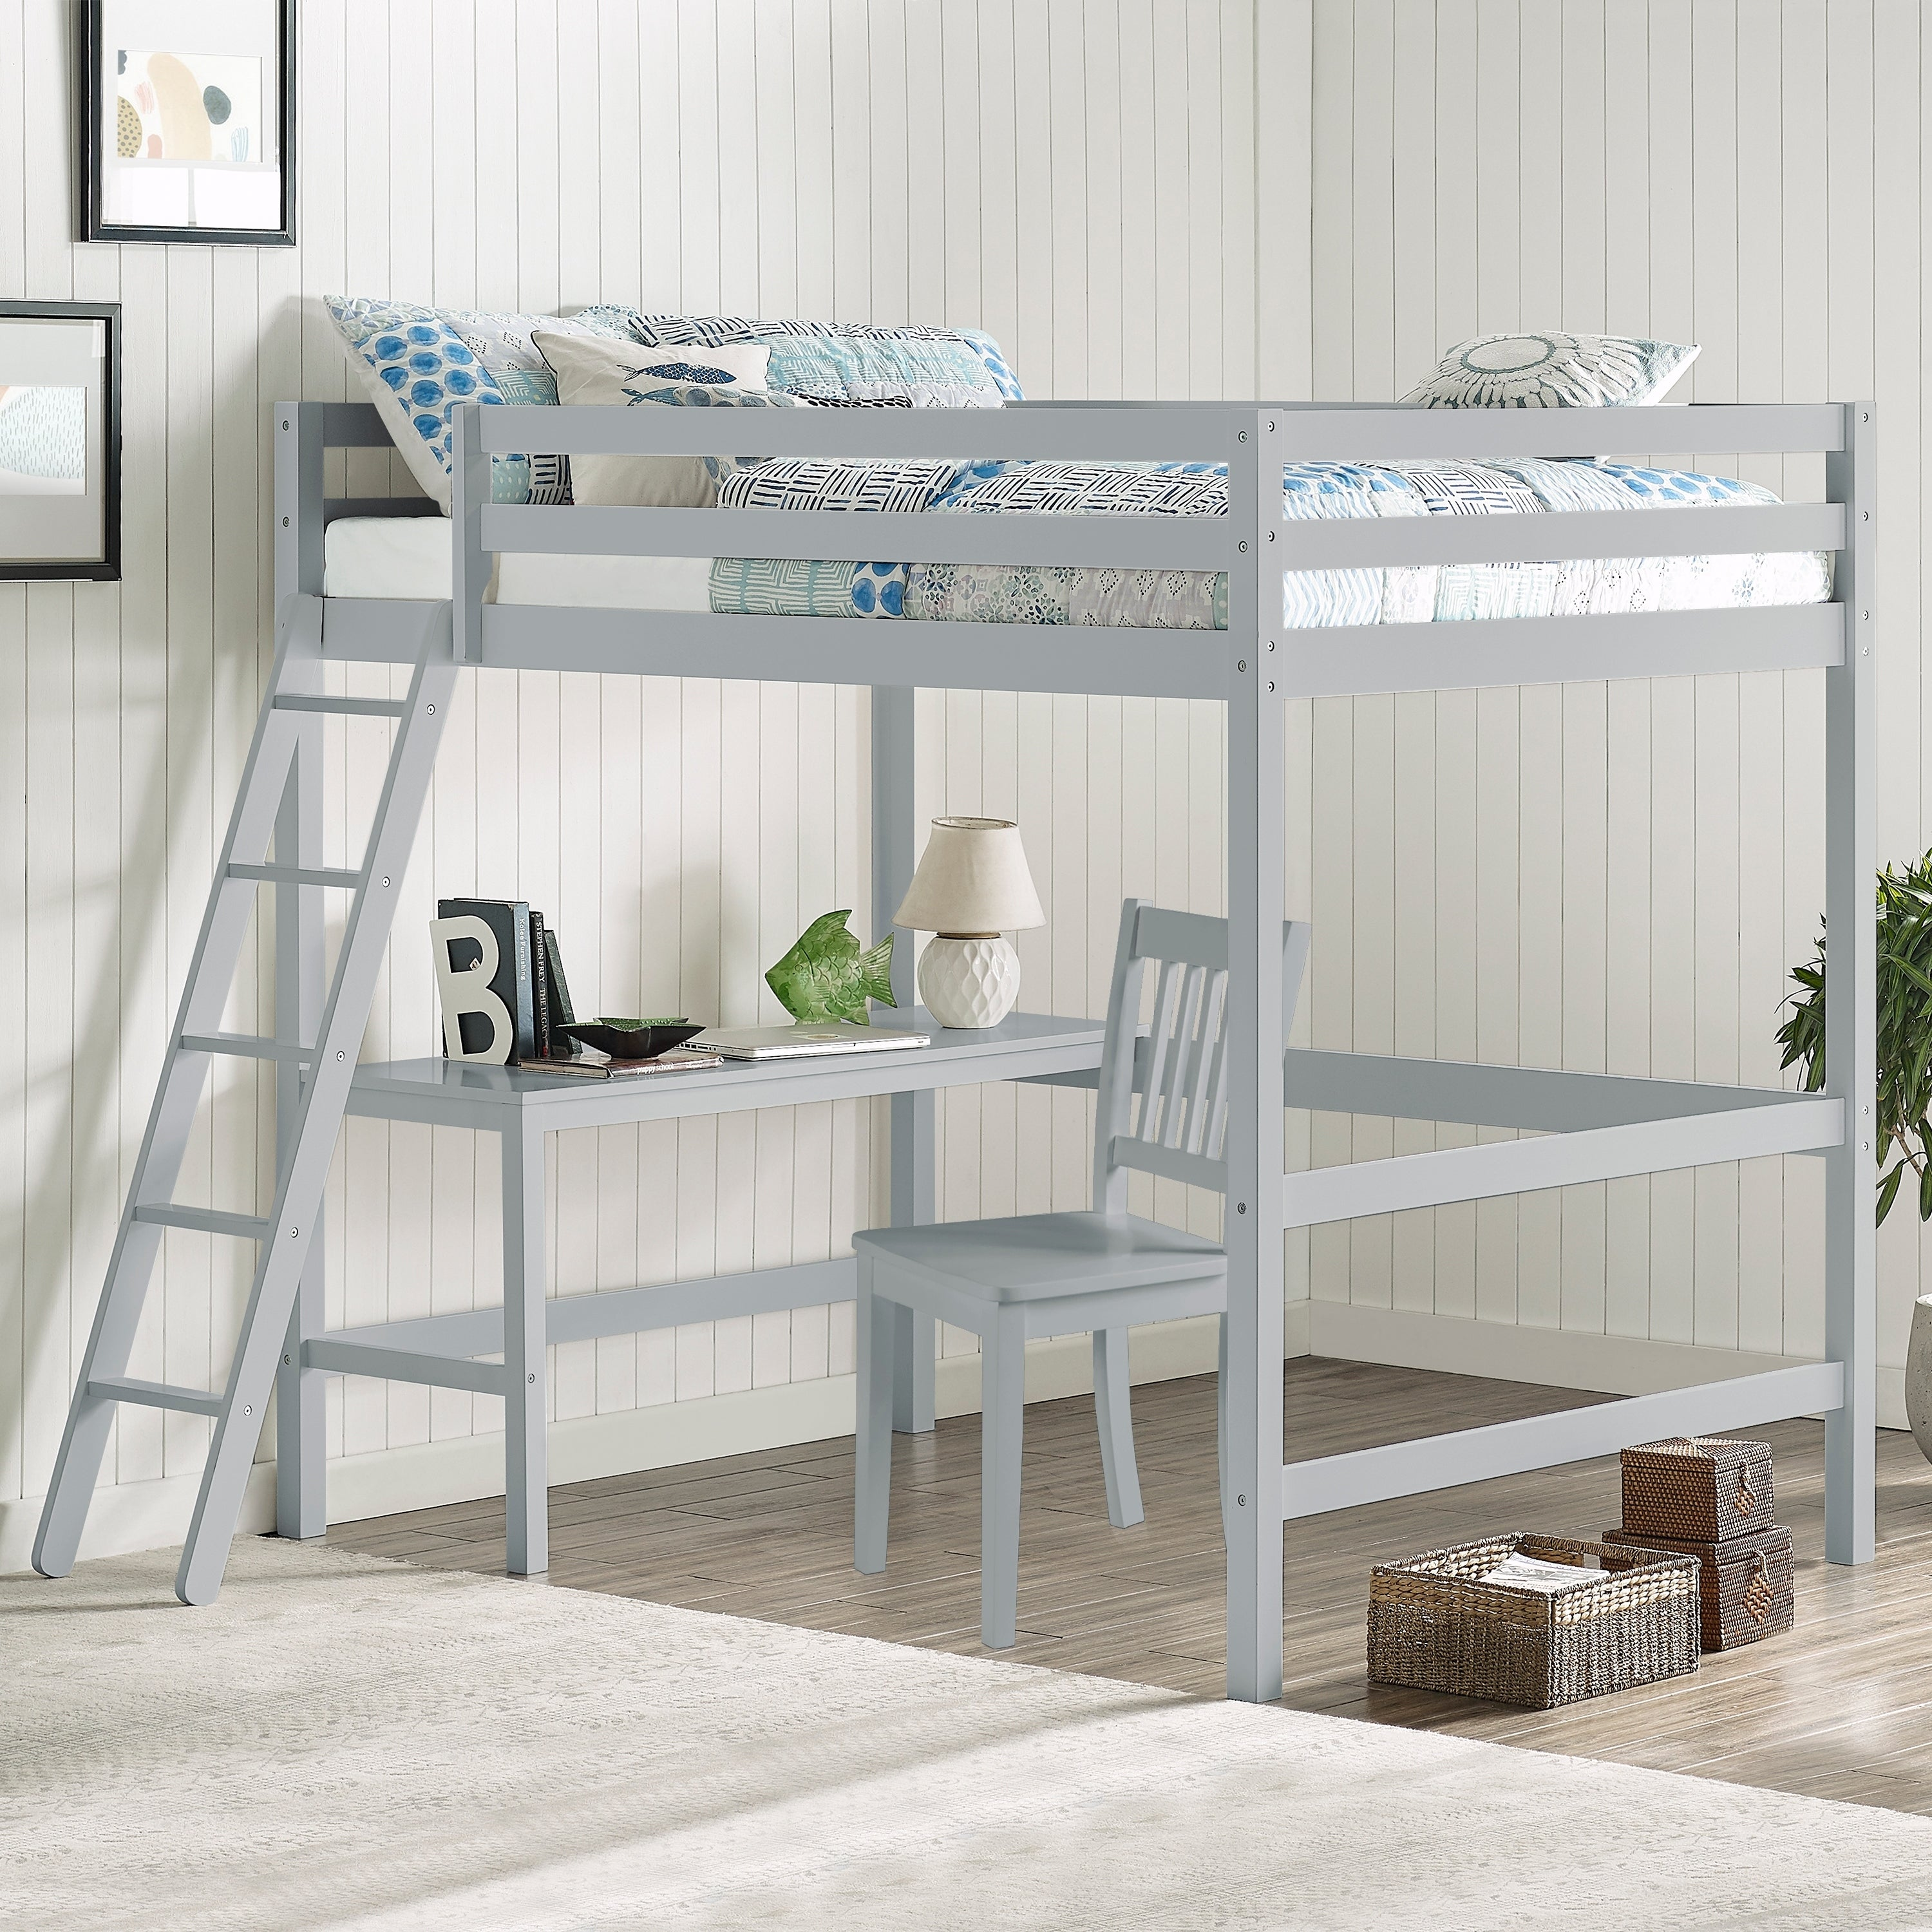 Taylor Olive Tansy Full Size Loft Bed With Chair Overstock 28135592 White